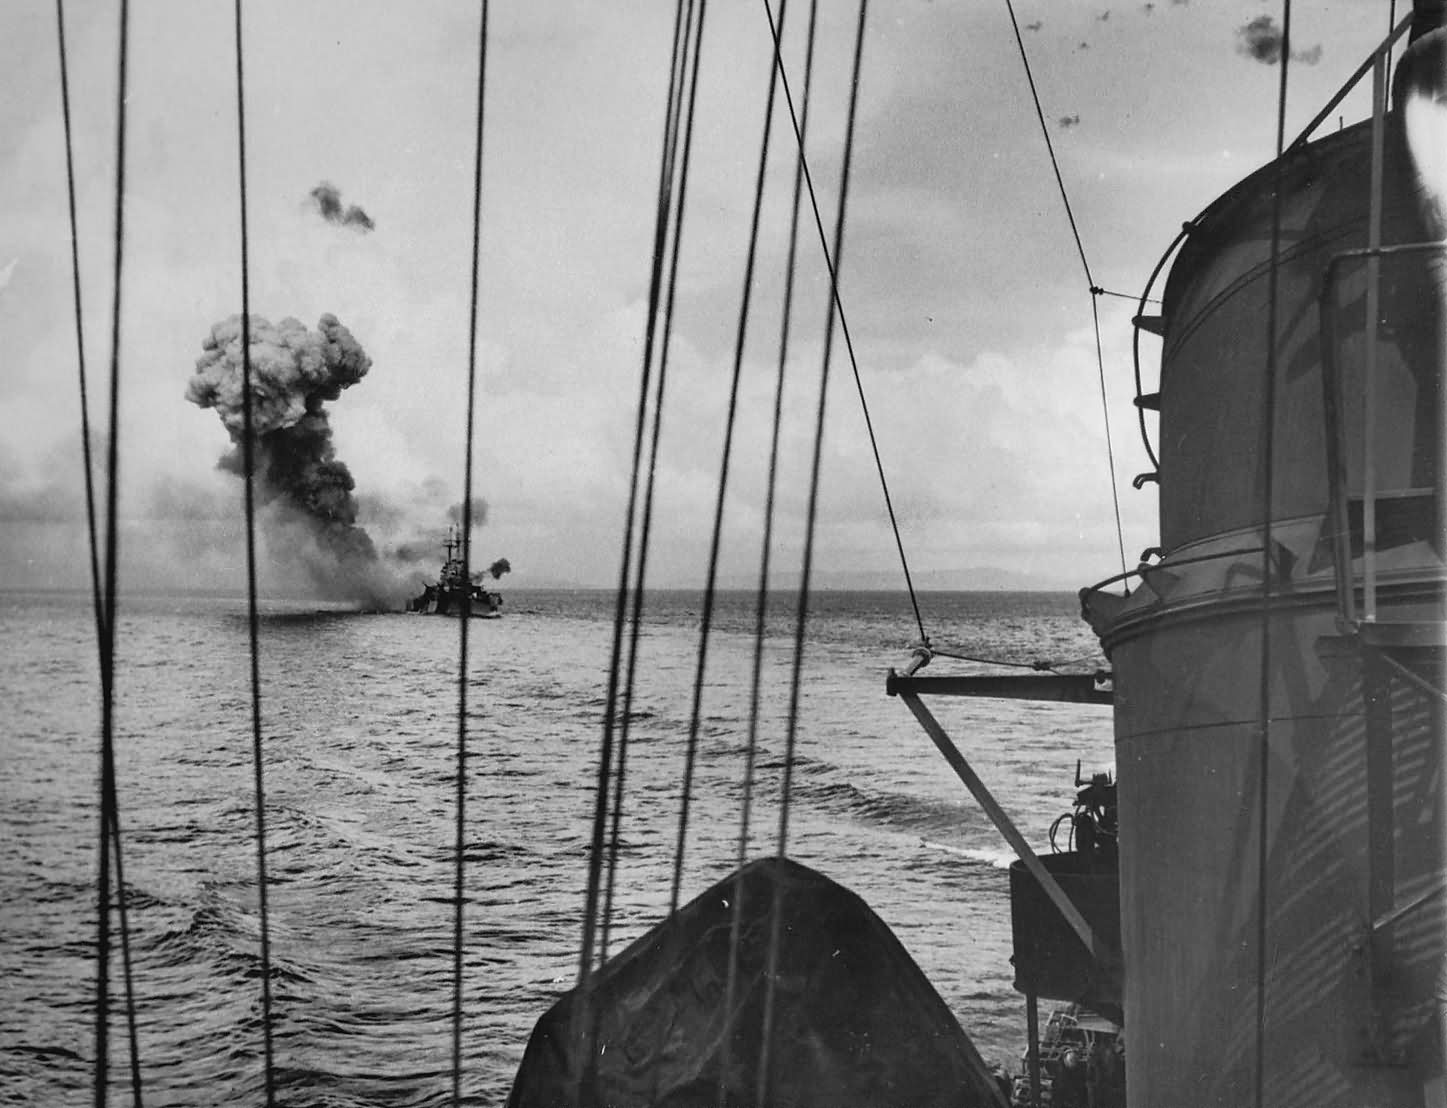 USS St. Louis CL-49 being hit by Japanese kamikaze Plane off of LEYTE Island